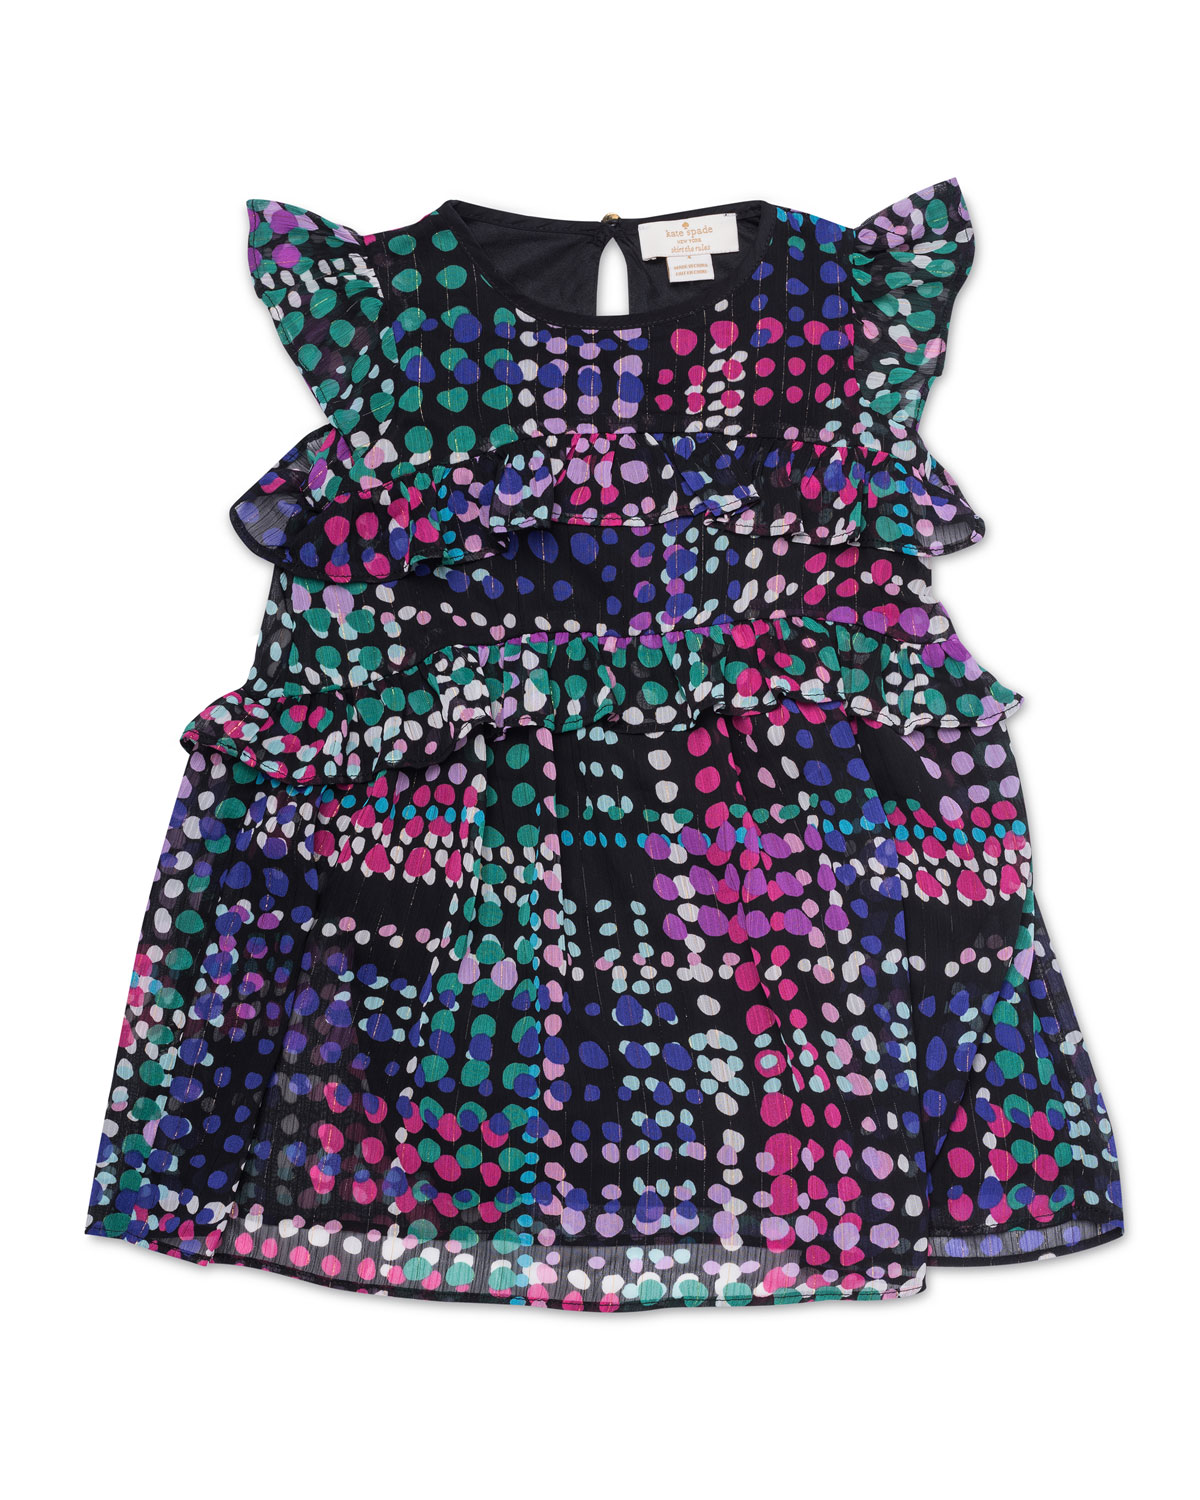 spots-print tiered ruffle dress, size 2-6x